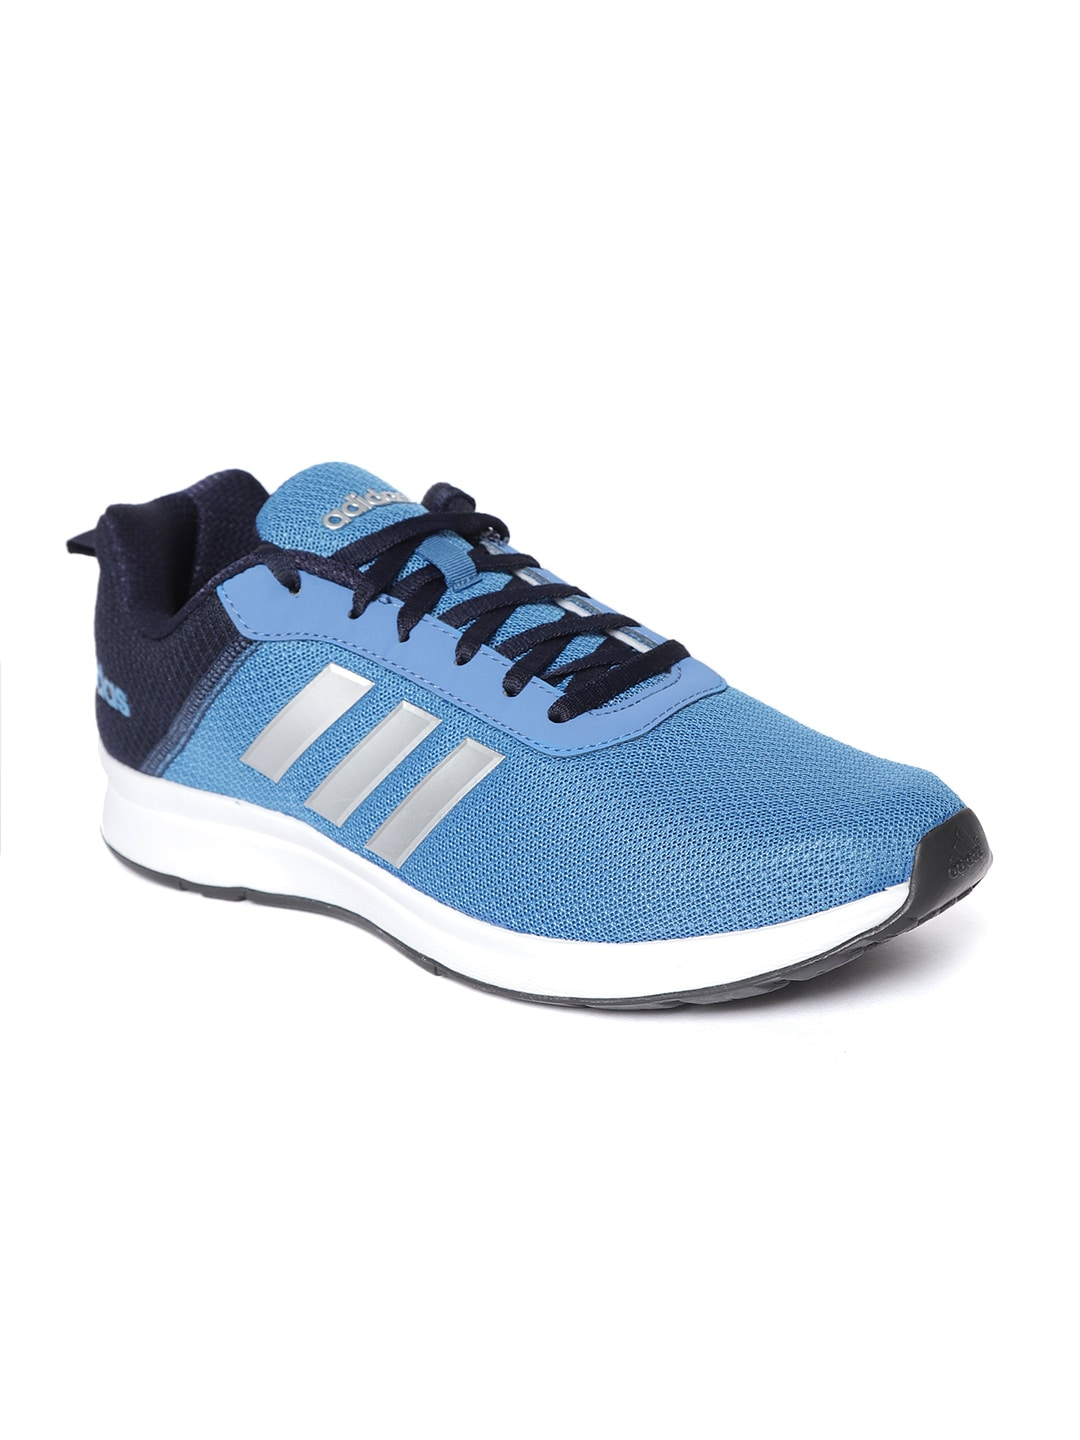 683005161 Adidas Shoes - Buy Adidas Shoes for Men   Women Online - Myntra